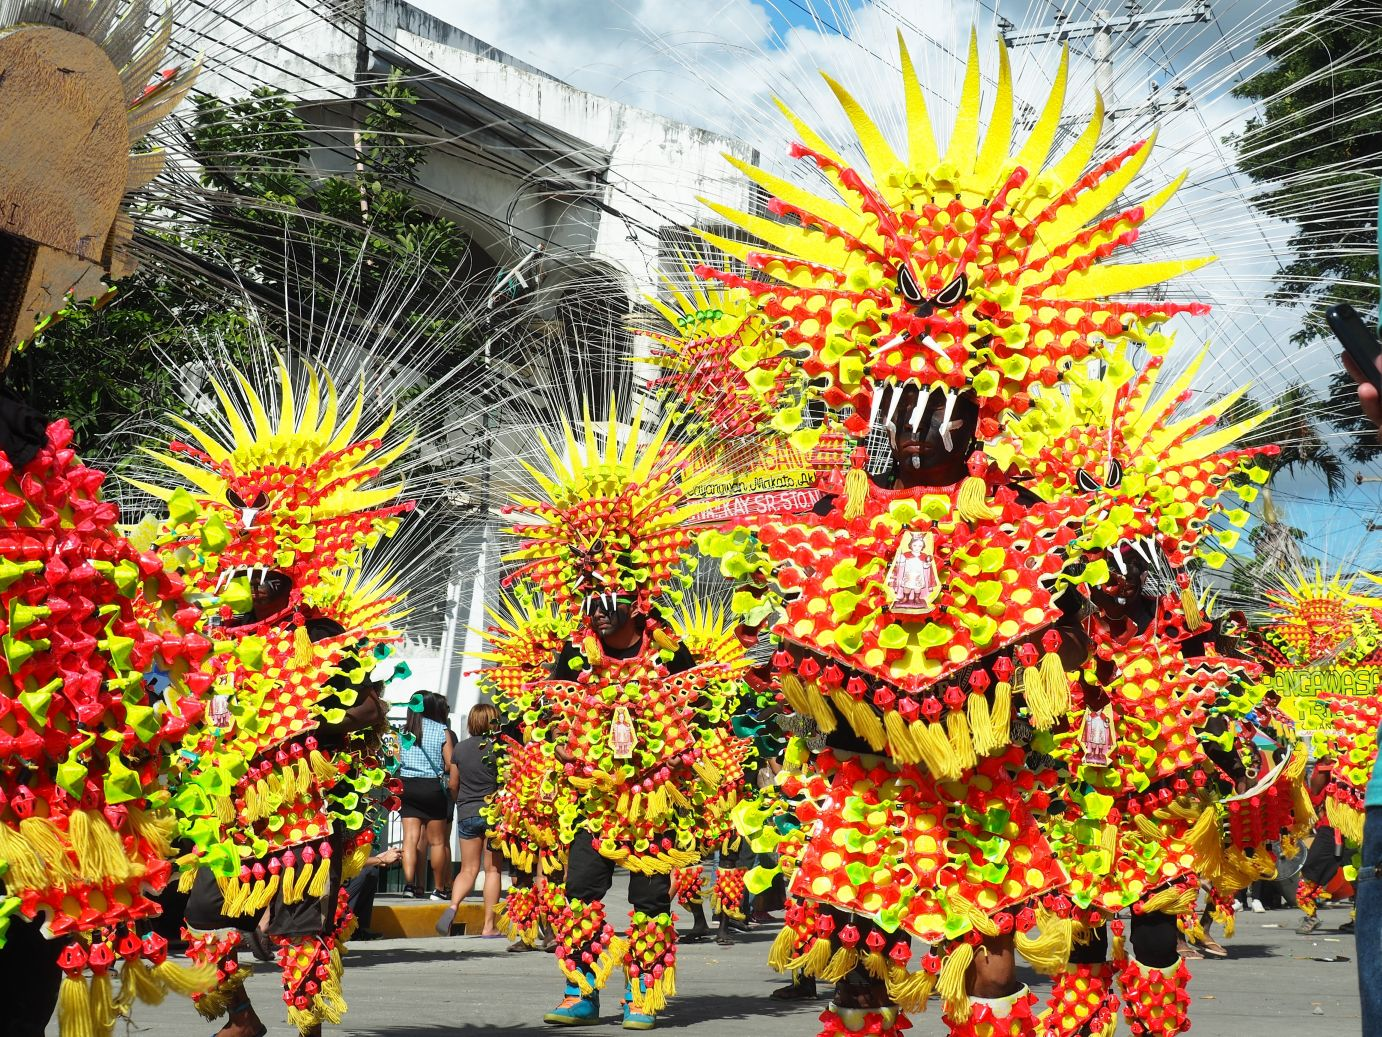 Colombia's Carnival of the Devil is a great excuse to head for warmer climes for a spot of authentic South American culture.